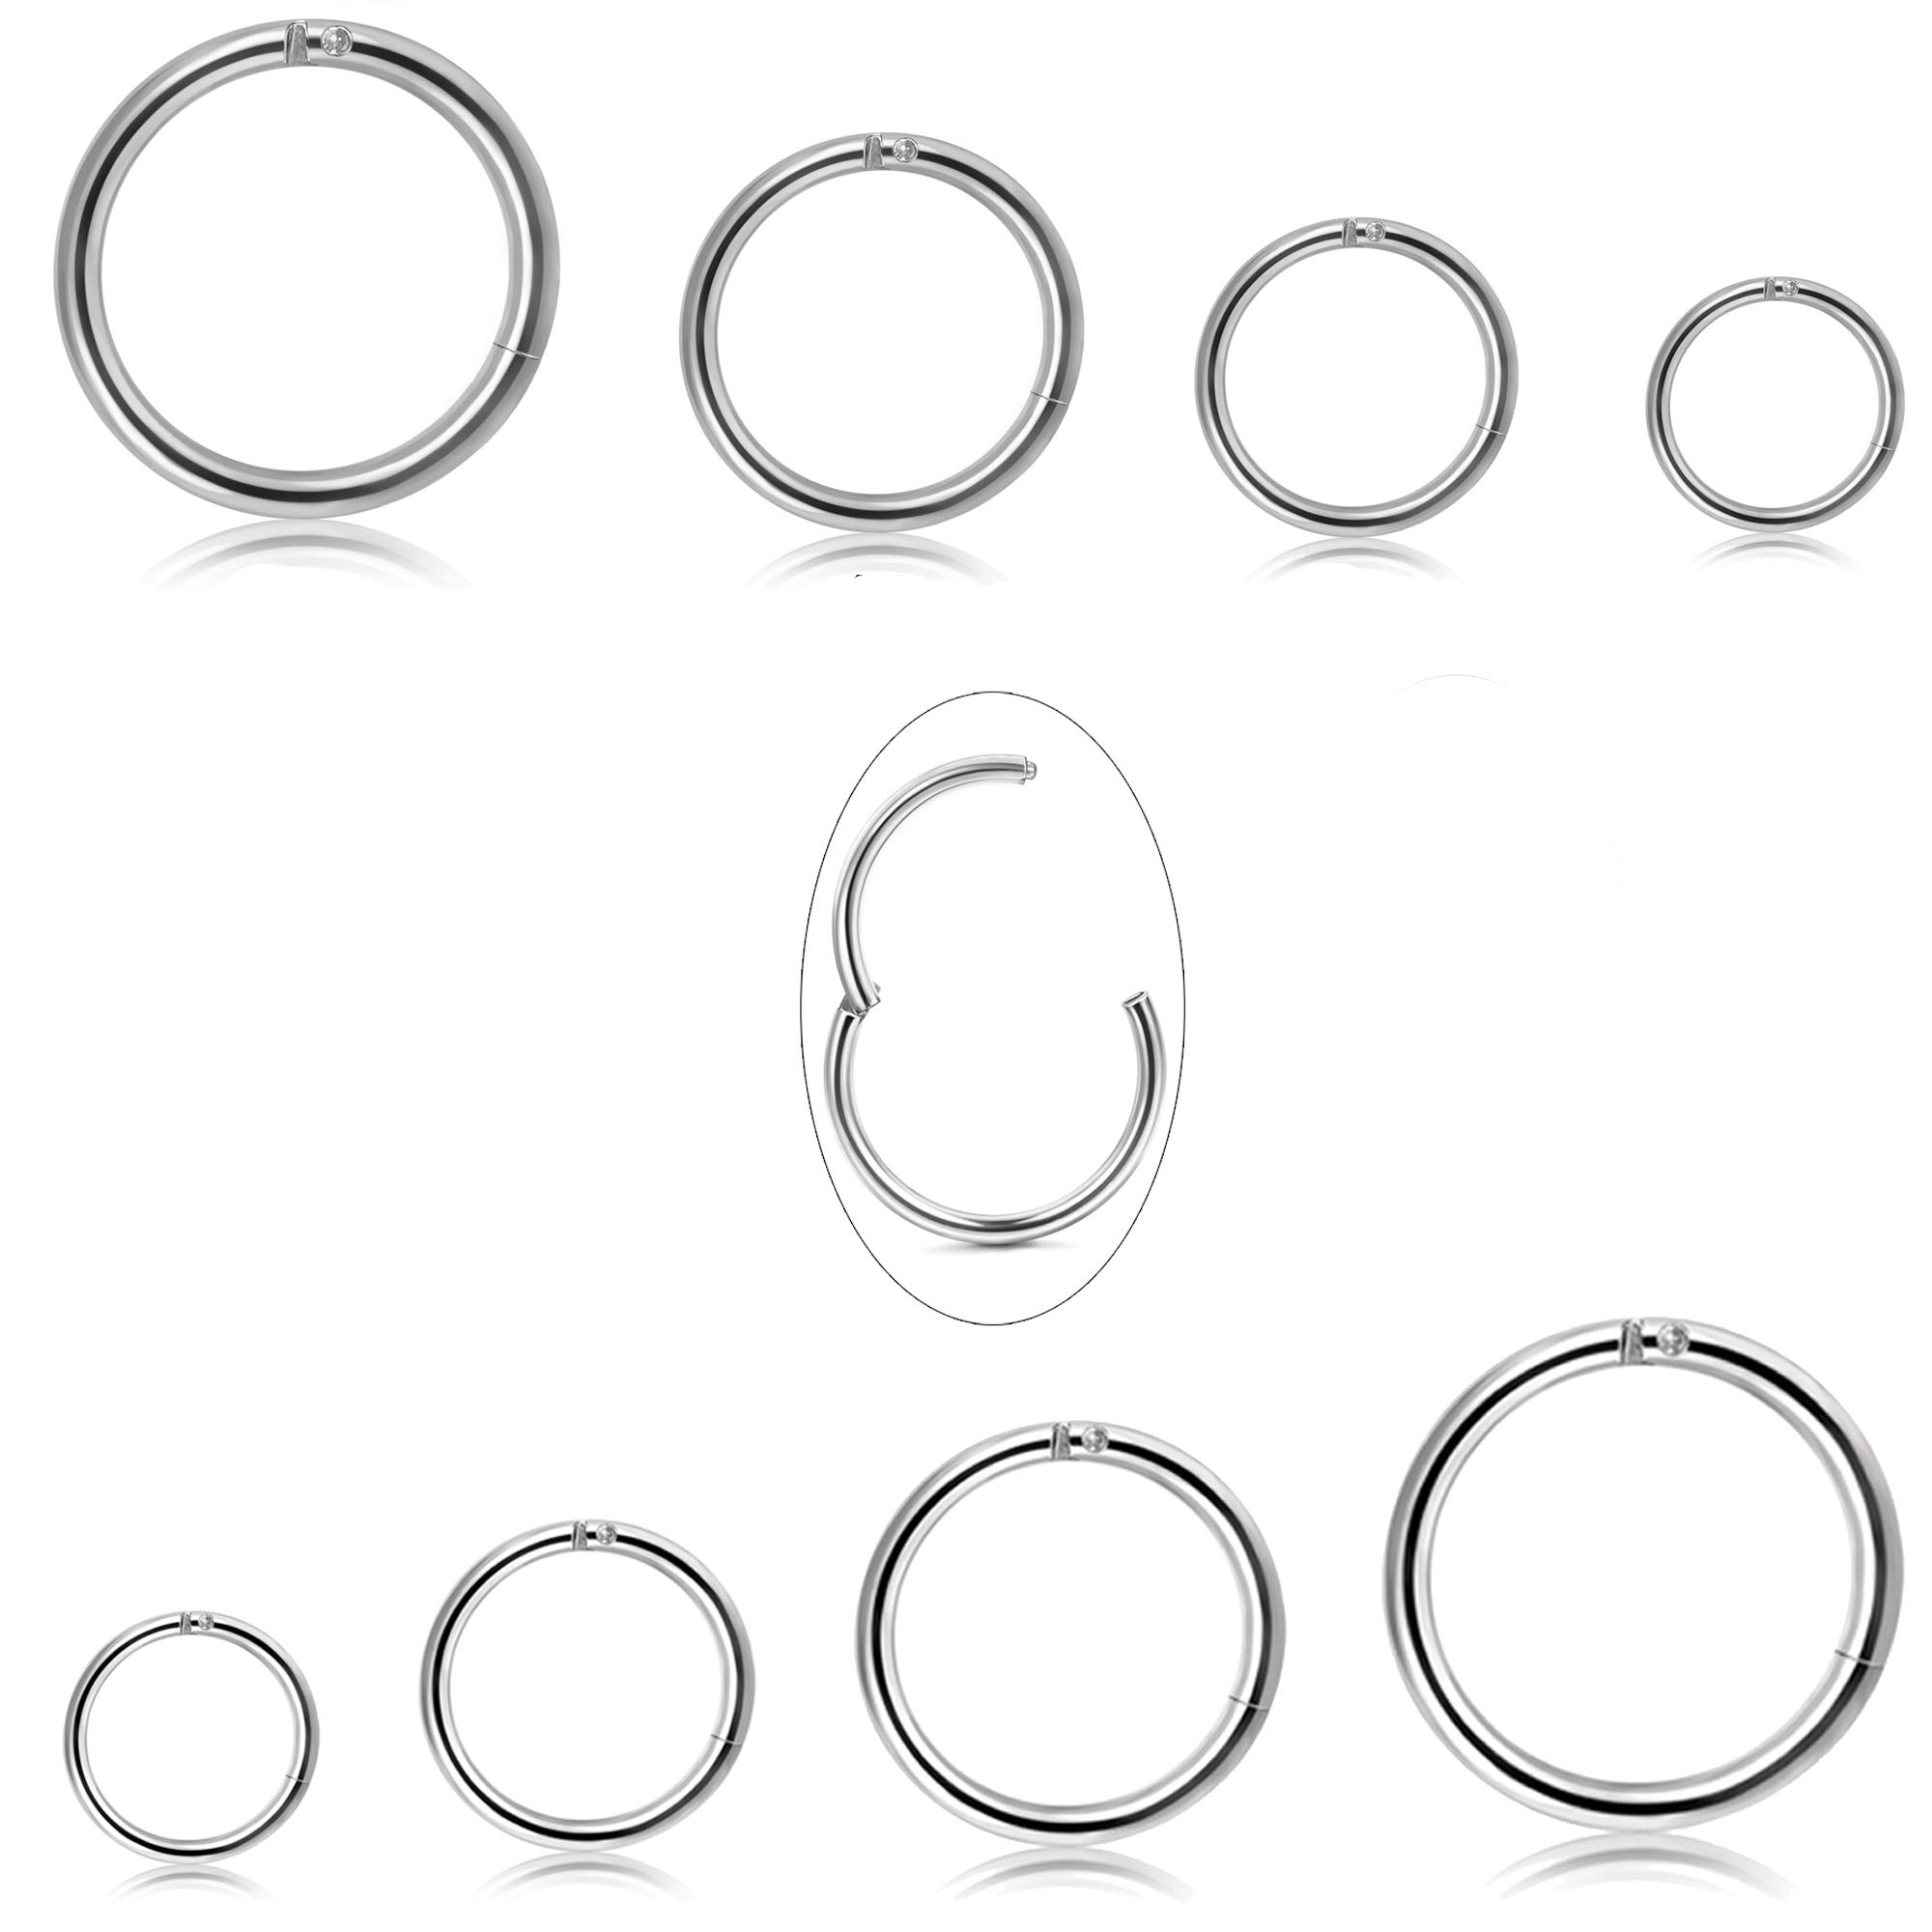 Jstyle 8Pcs 16G Surgical Steel Hinged Clicker Segment Nose Rings Hoop Helix Cartilage Daith Tragus Sleeper Earrings Body Piercing 6-12MM Improved by Jstyle